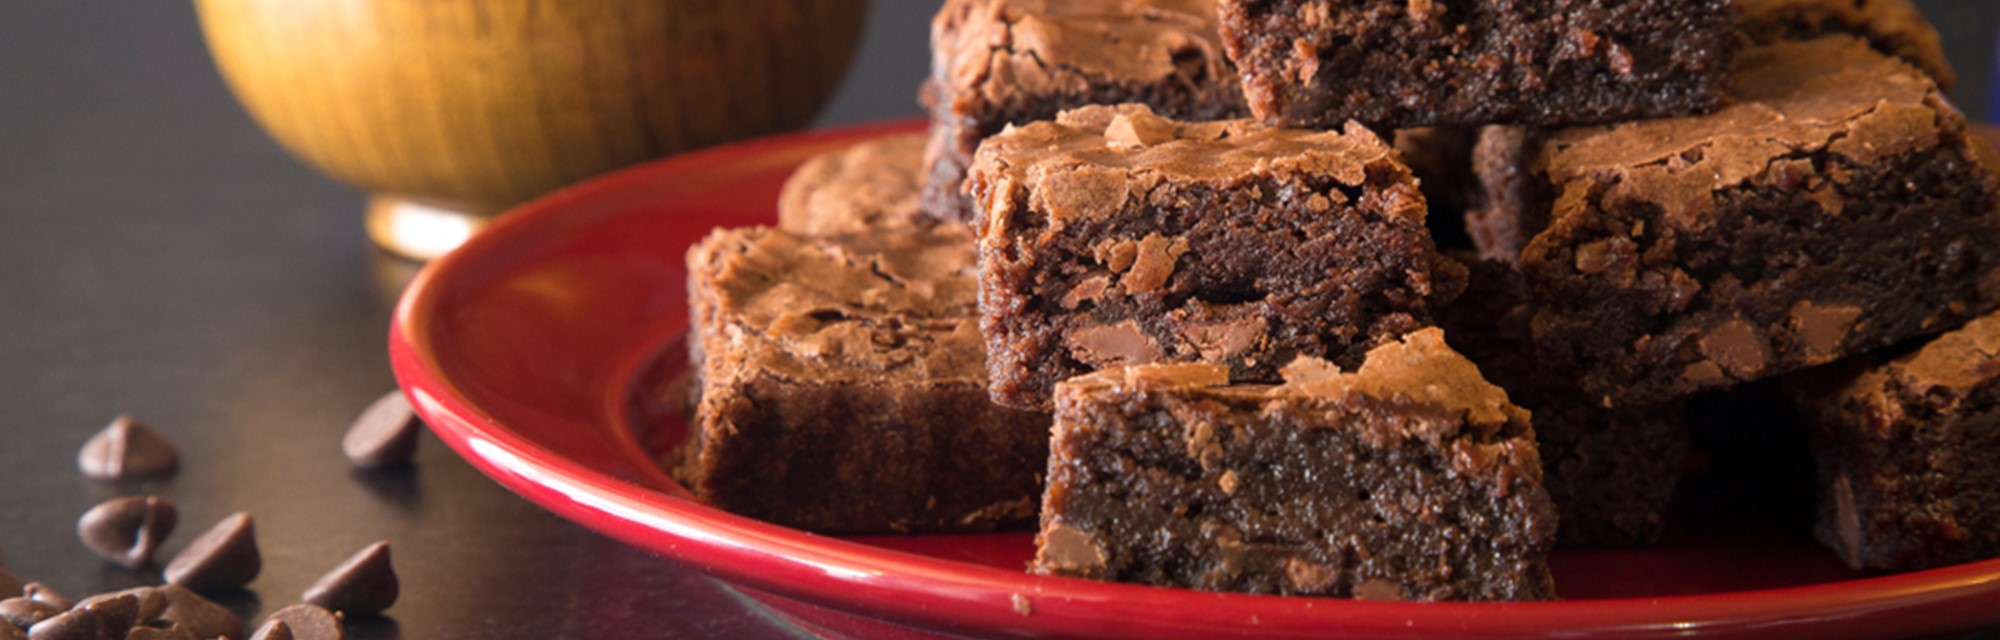 Recipes - Chocolate Brownies